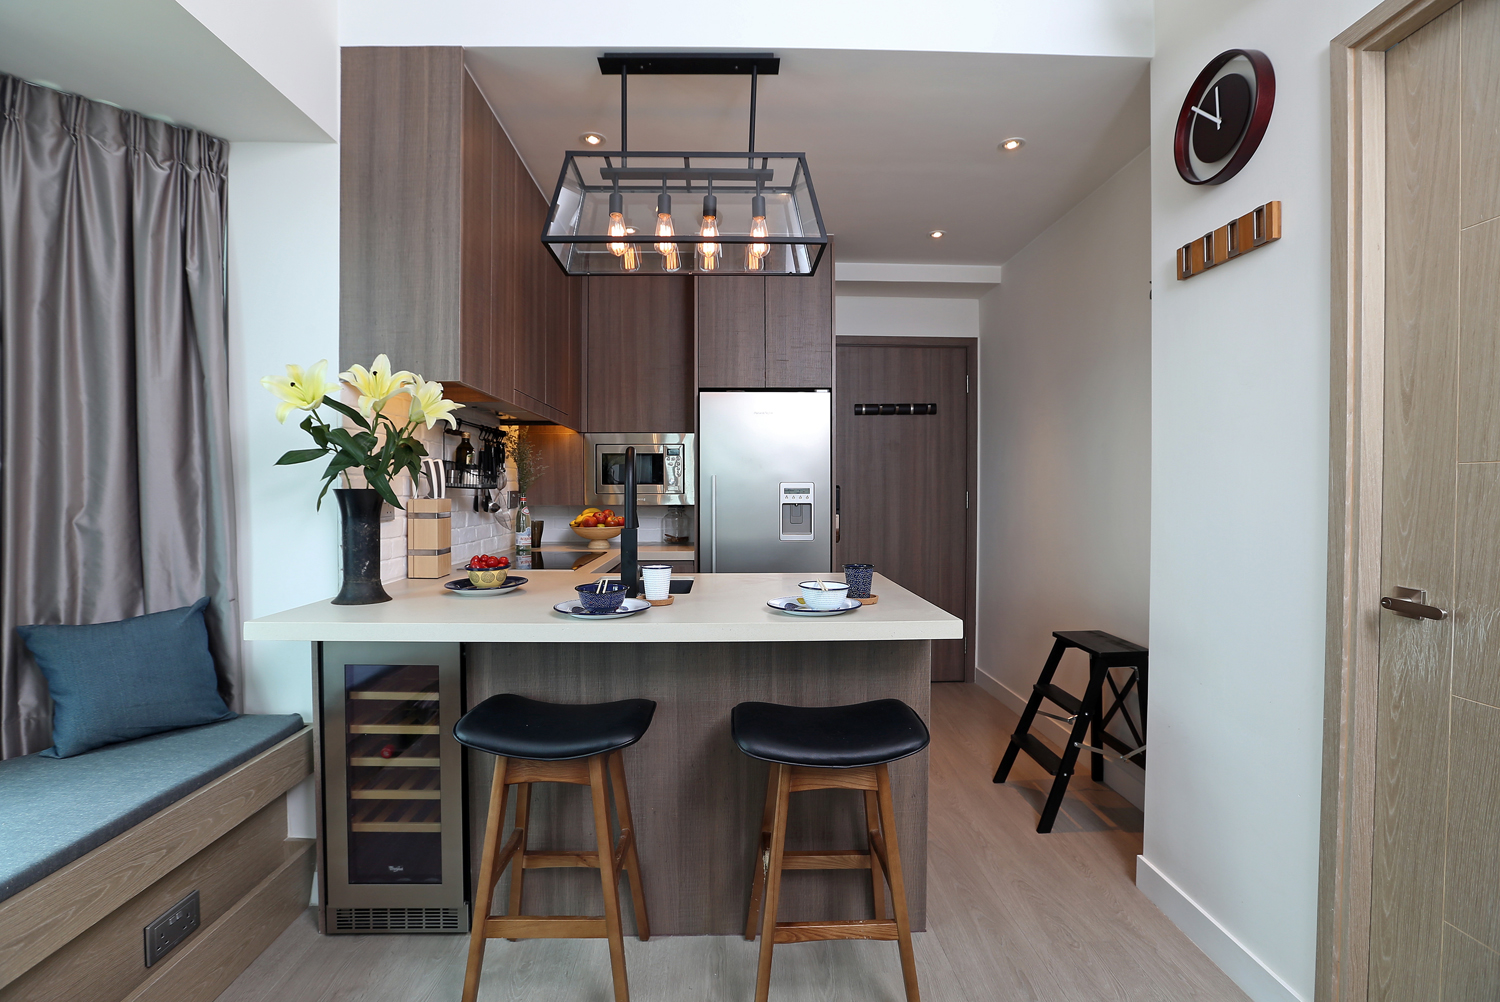 How A 480 Sq Ft Hong Kong Flat Became A Trendy Urban Home